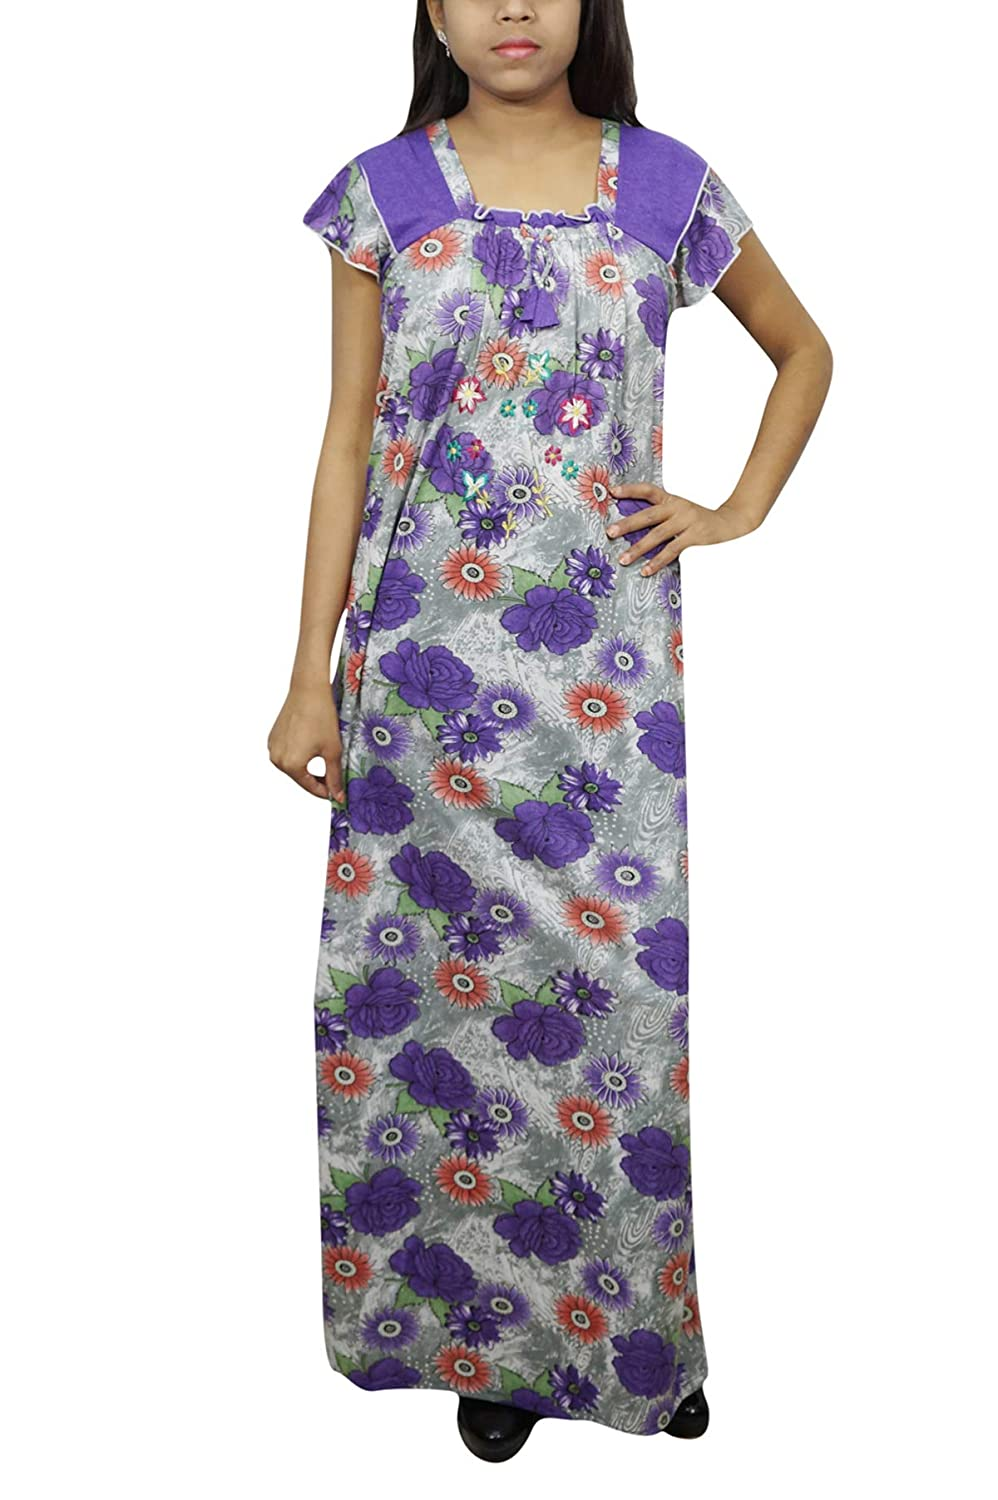 Indiatrendzs Women s Nightdress Floral Printed Hosiery Purple Loose Nighty  S  Amazon.in  Clothing   Accessories 5eb257455